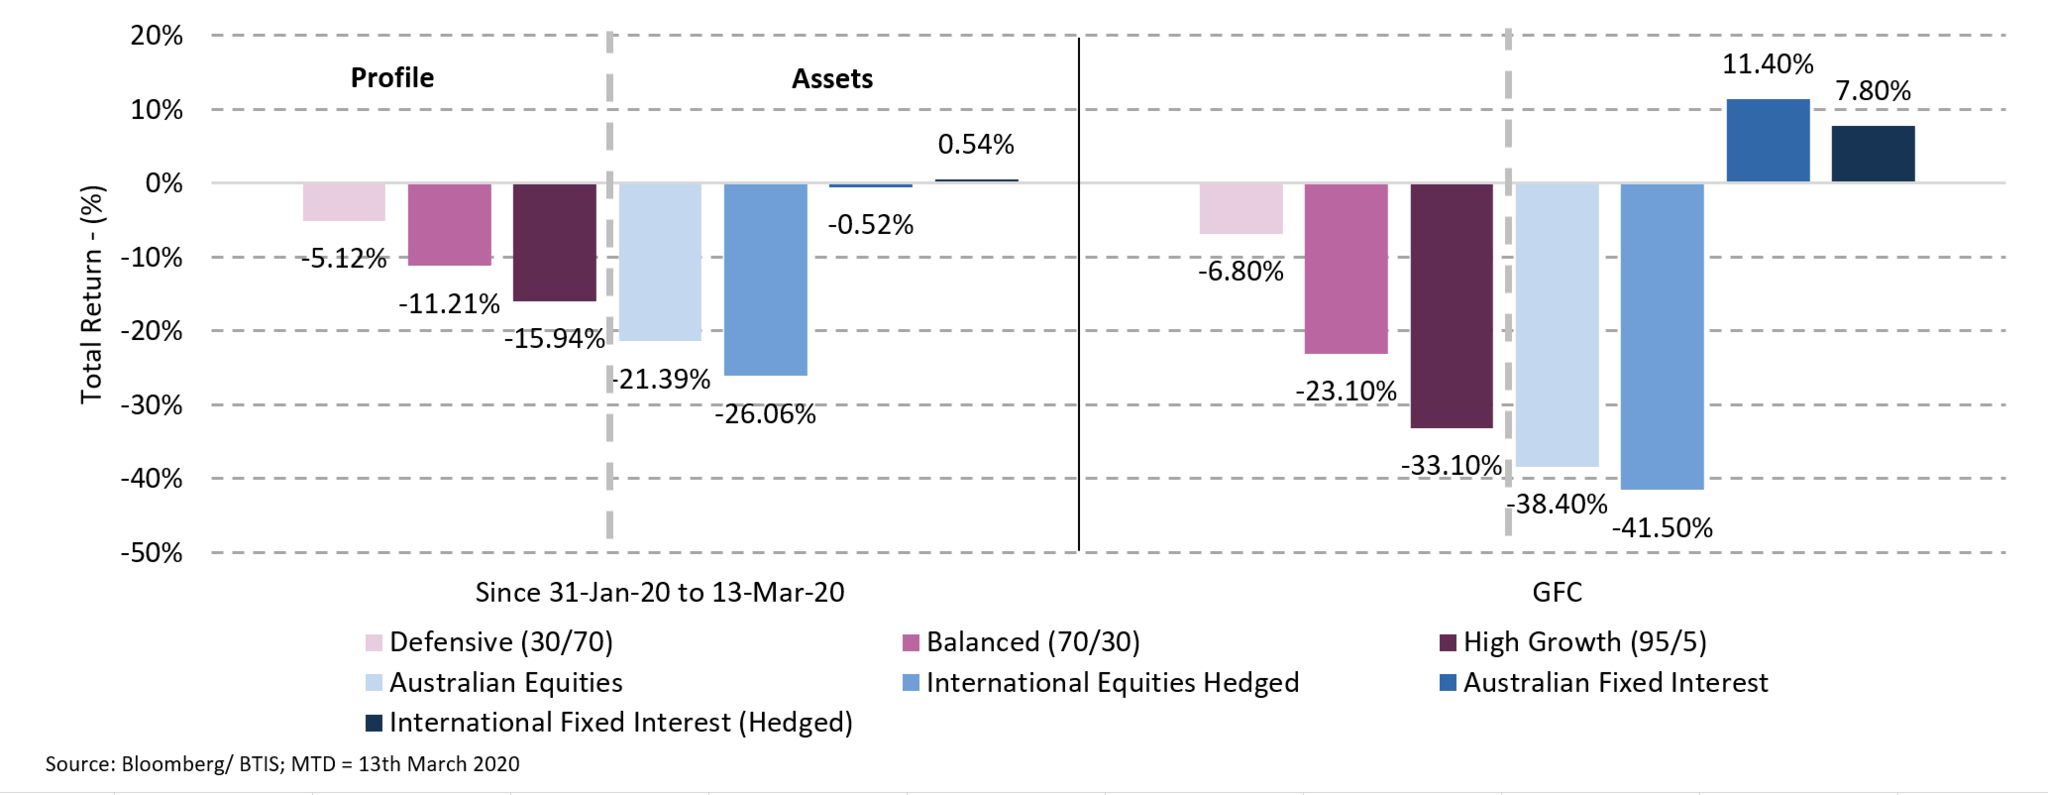 This chart demonstrates the benefits of diversification using and indicative Defensive fund, a balanced fund and High Growth funds. It shows that each performed in line with their respective asset allocations, protecting the investor against the far more significant falls in equity markets. For example, over the period 31 January 2020 to 13 March 2020, whilst international equities have fallen -26.06%, a balanced fund has only fallen -15.94%.